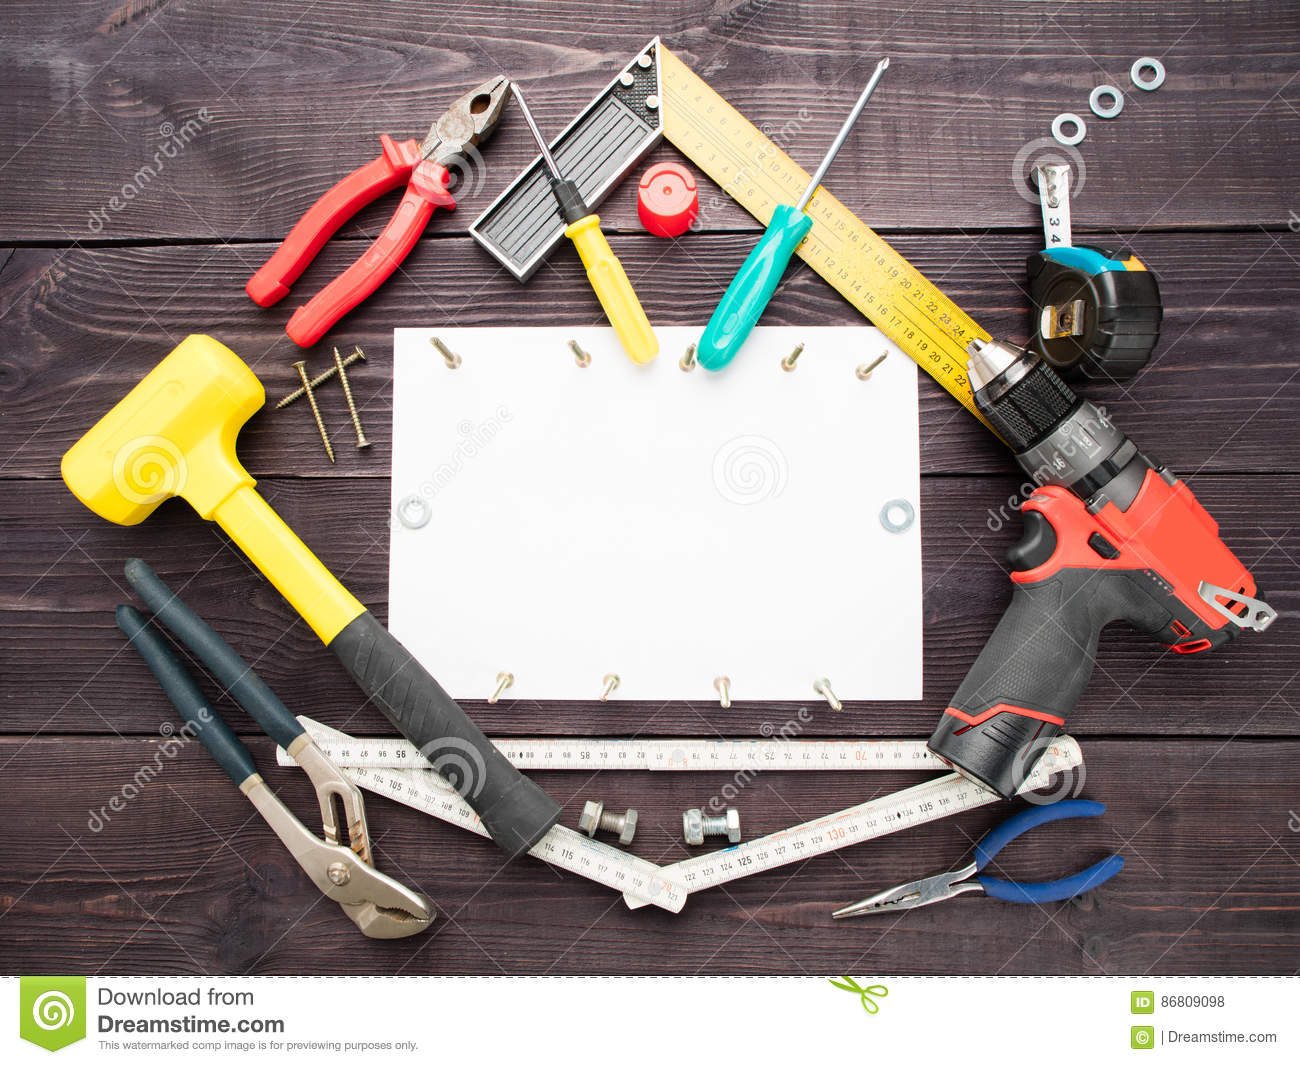 The tool building on the wooden background around the white sheet of paper